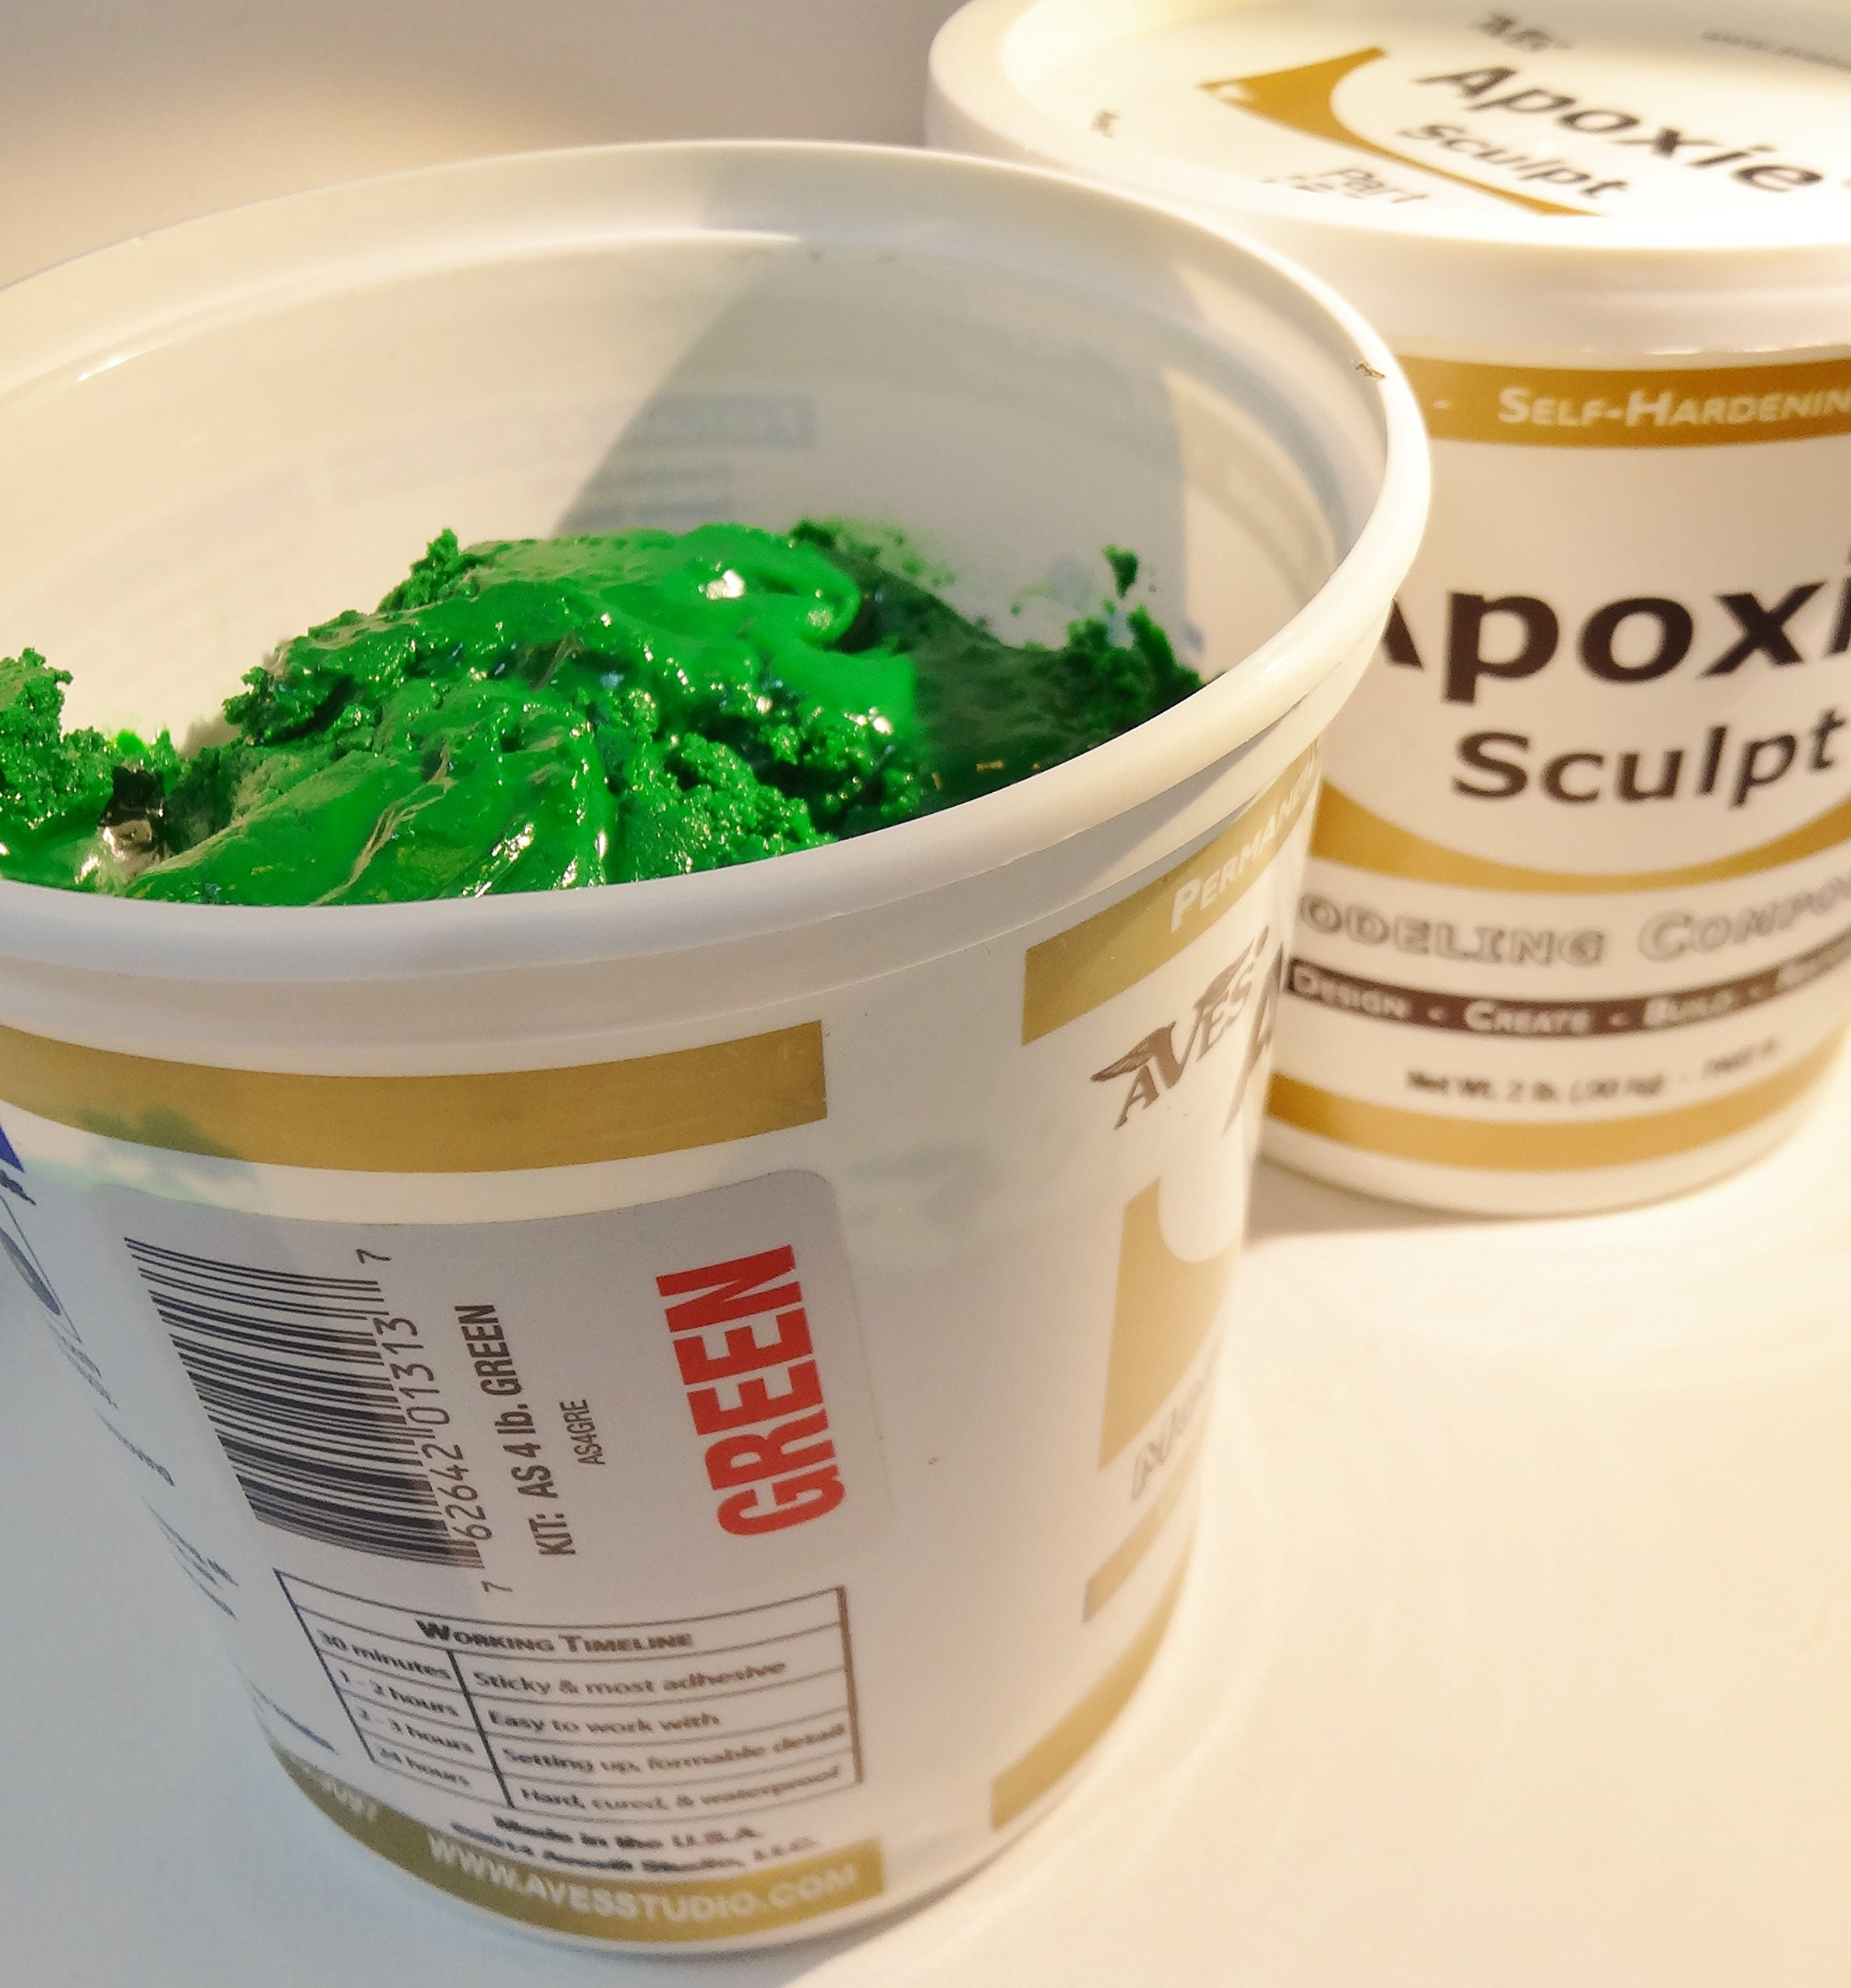 Apoxie Sculpt 4 Lb. Epoxy Clay - Green by Aves